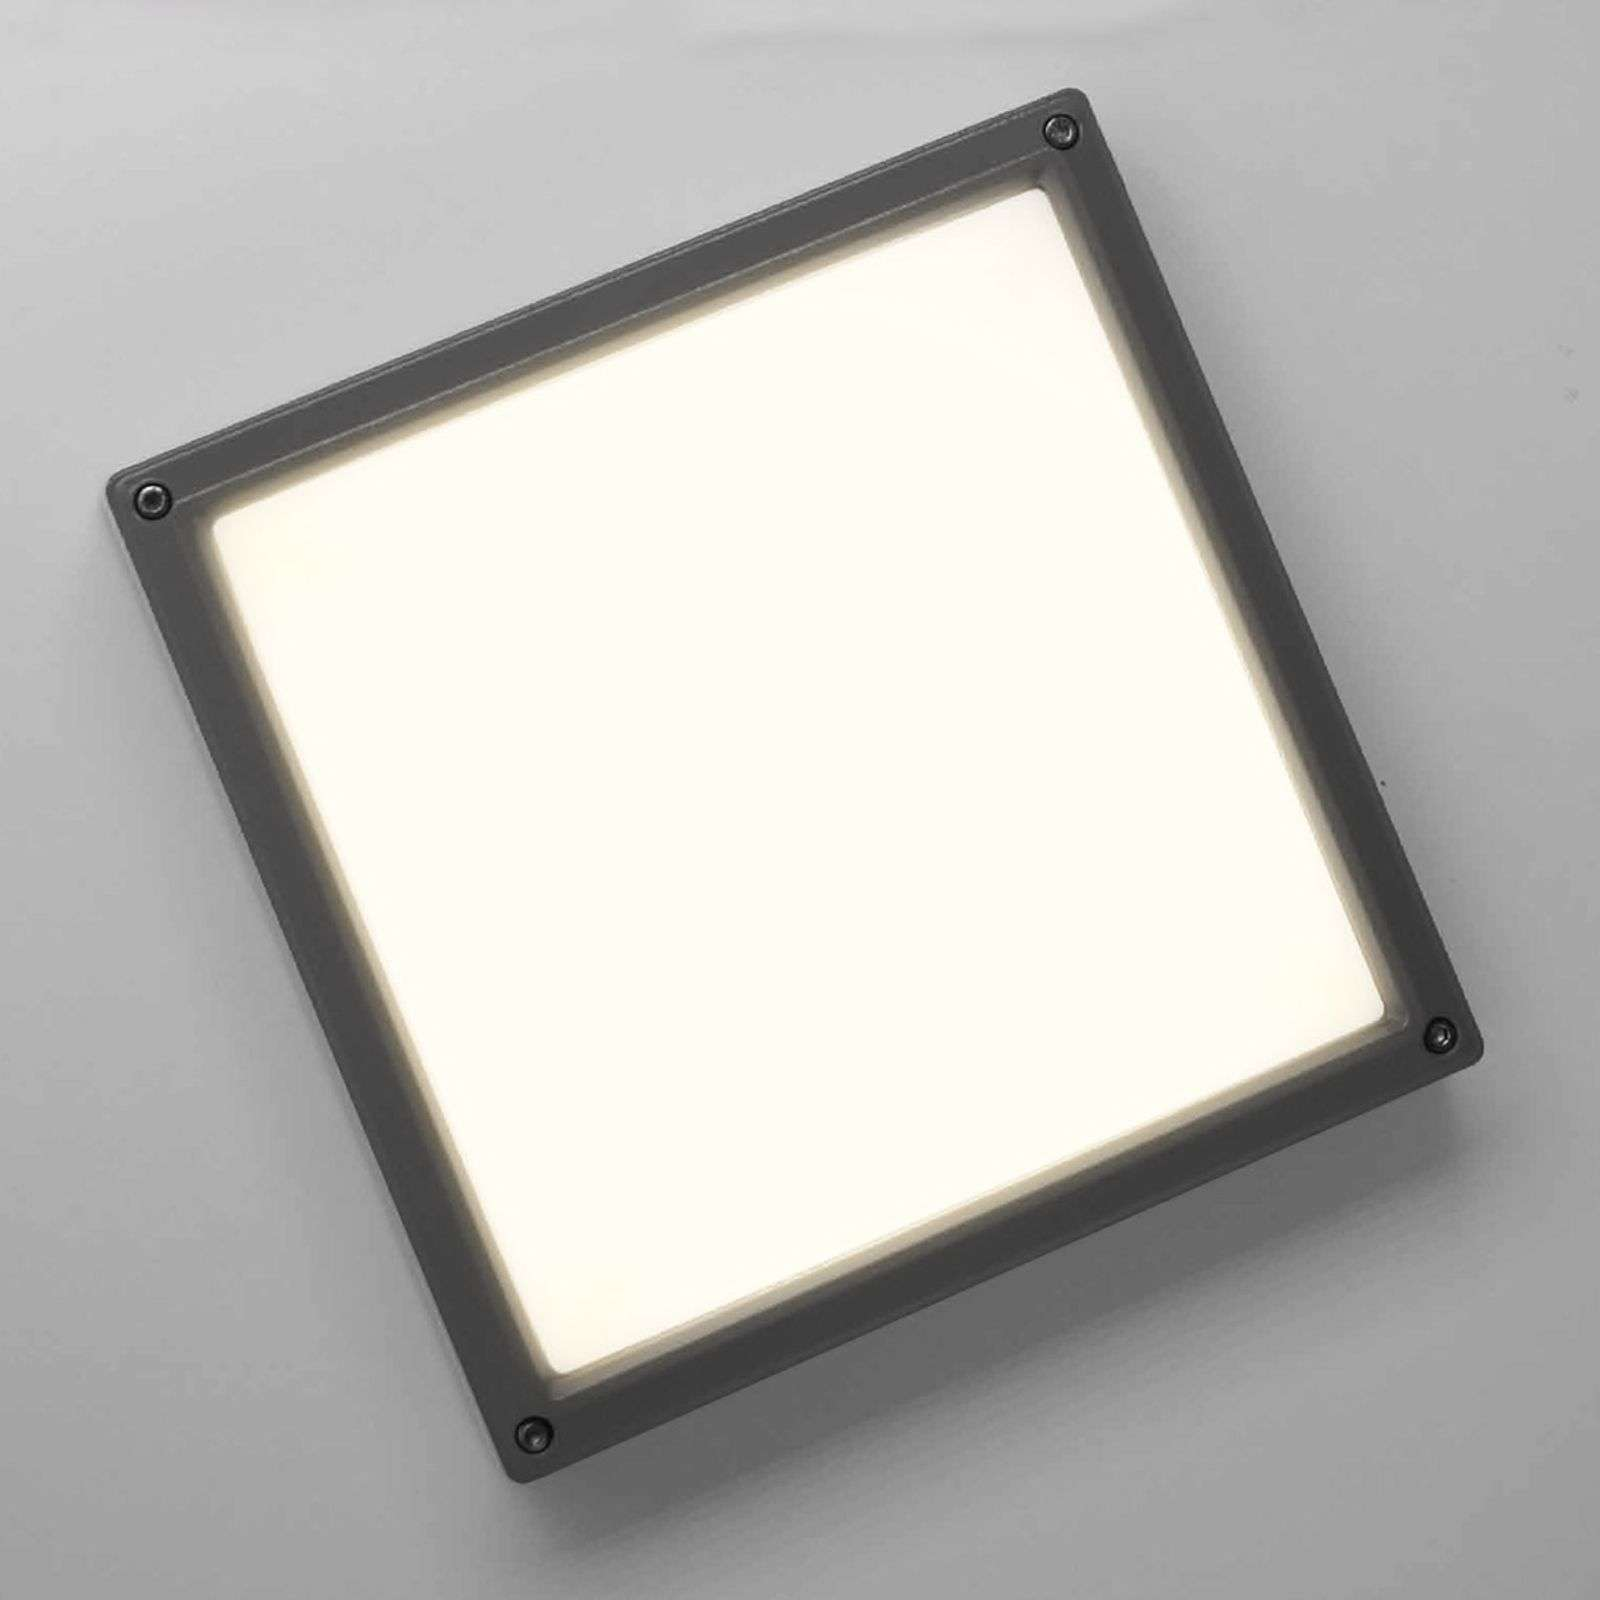 SUN 11 - applique LED 13W, antracite 3K